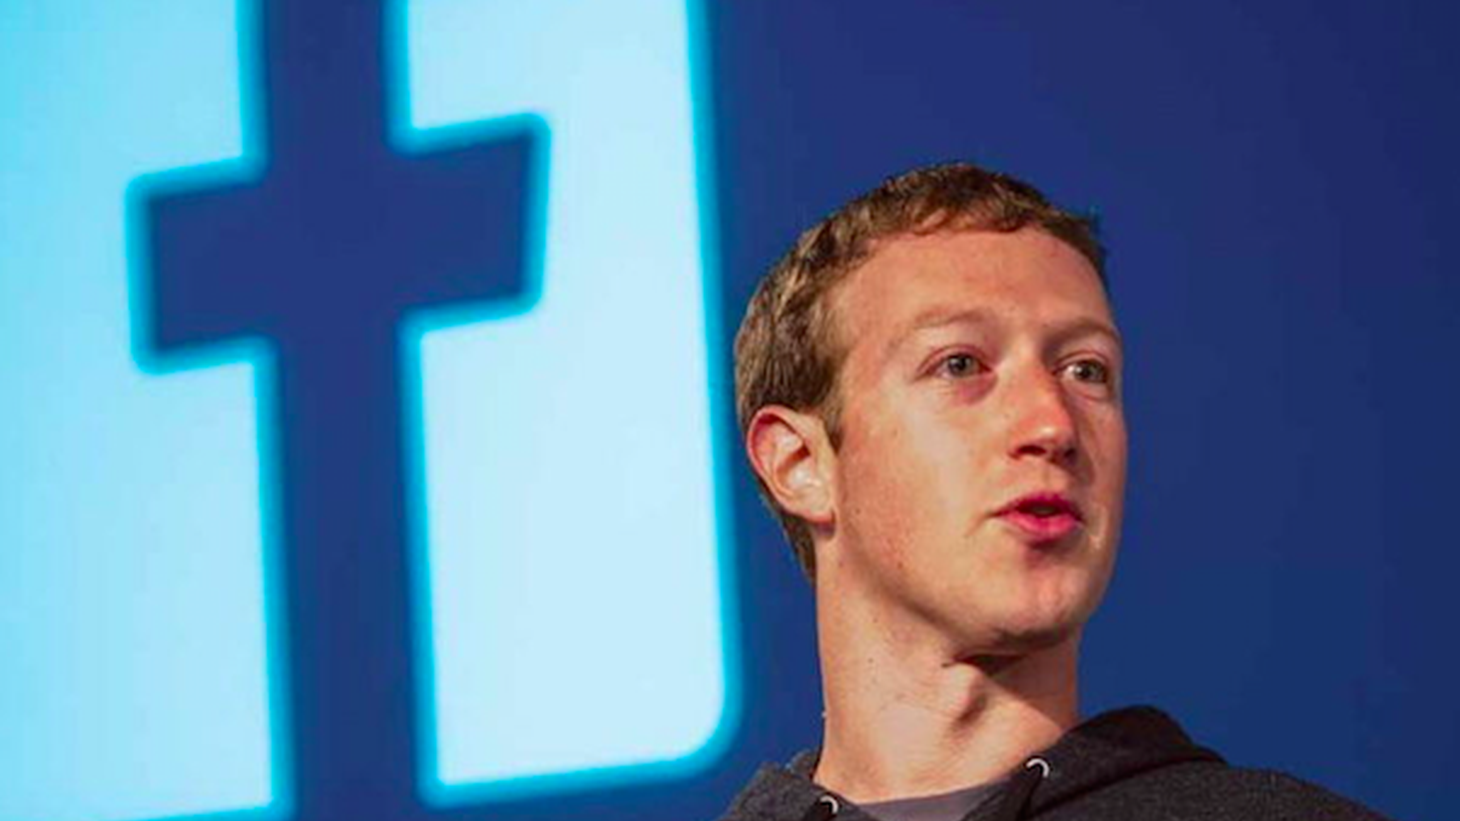 Mark Zuckerberg apologized on Wednesday for how Facebook handled the Cambridge Analytica scandal, saying his company will protect users' privacy.